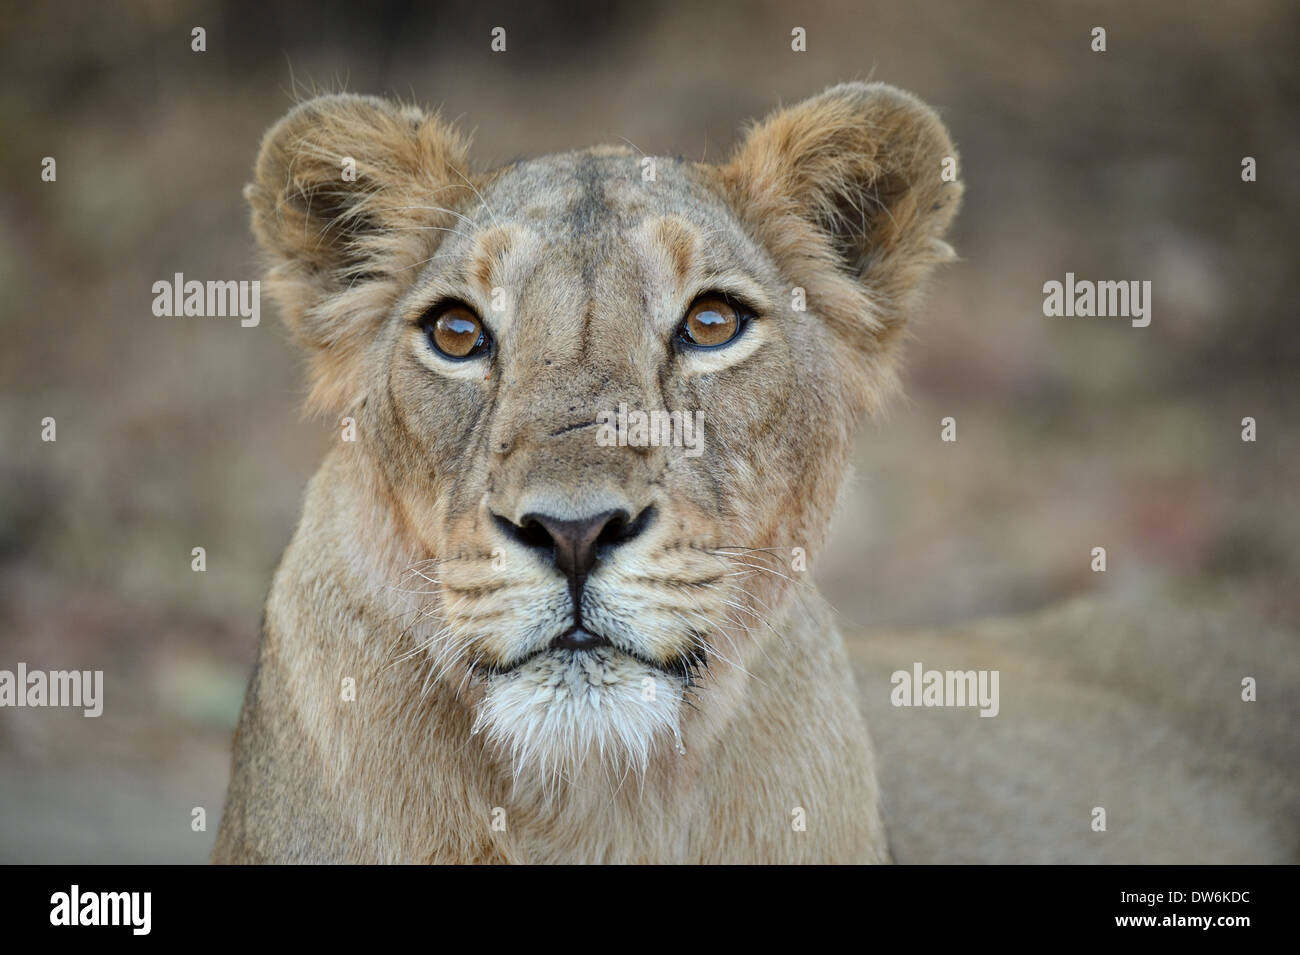 Young Cub poses in front of camera in Sasan Gir of Gujarat - Stock Image